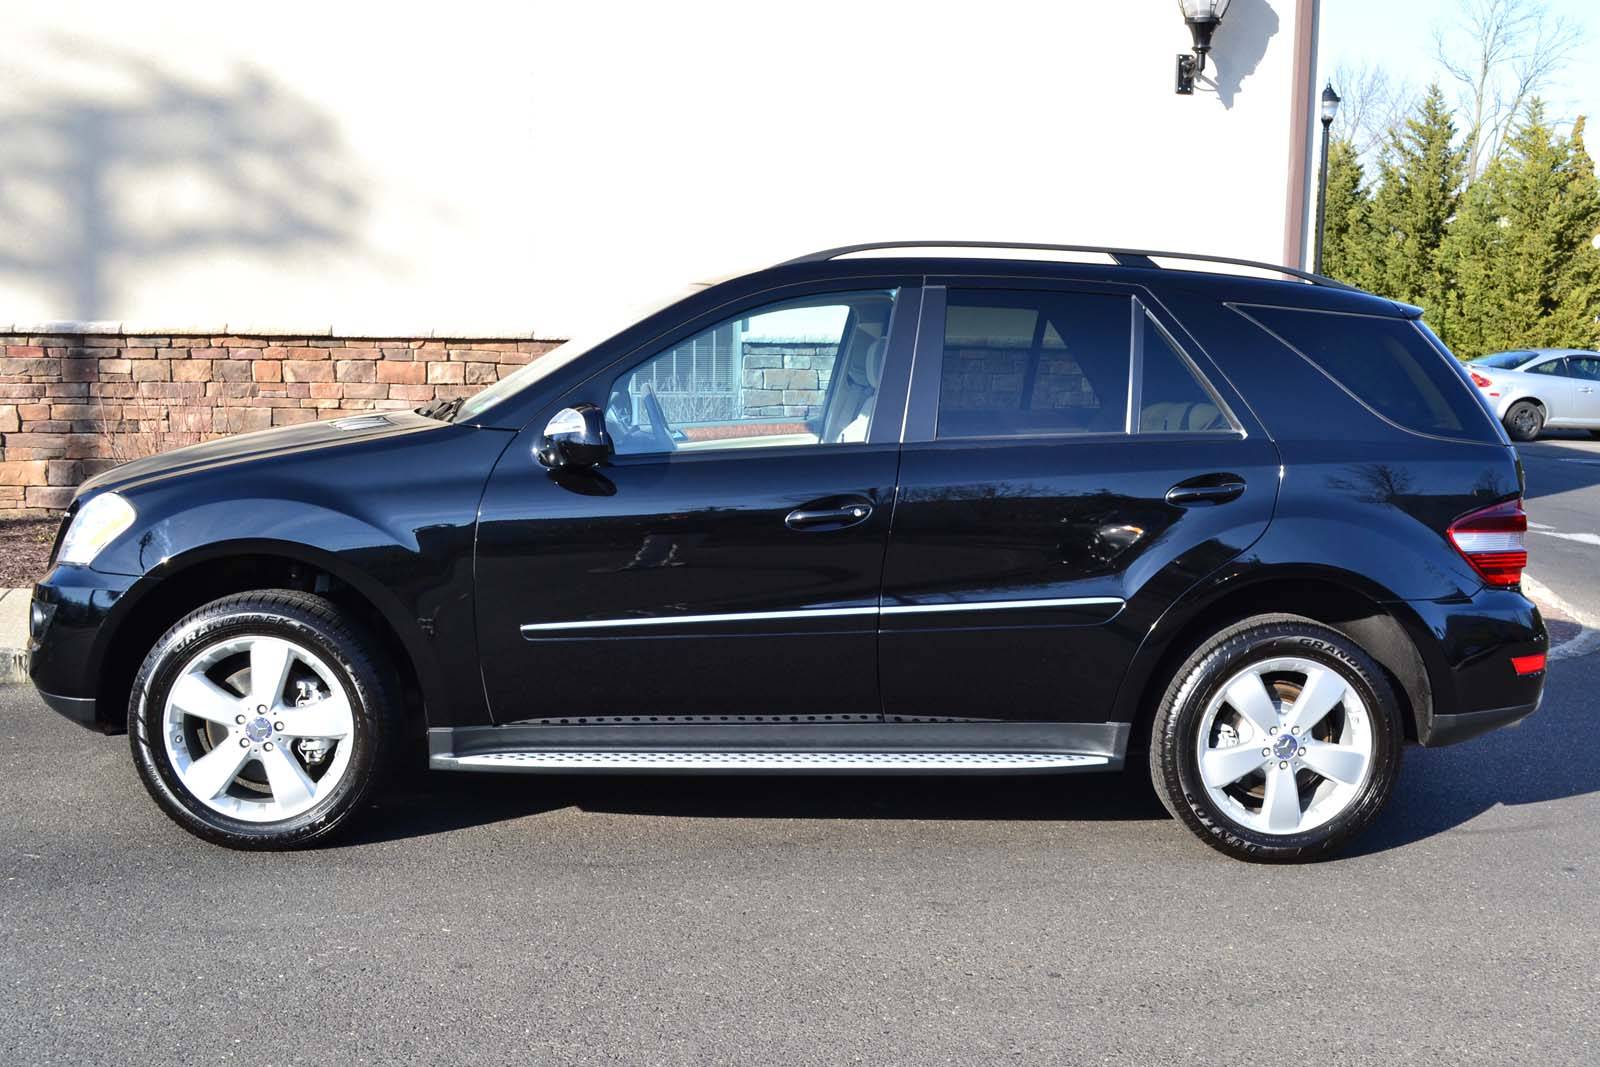 7 Passenger Suv >> 2009 Mercedes Benz ML350 4Matic Pre-Owned